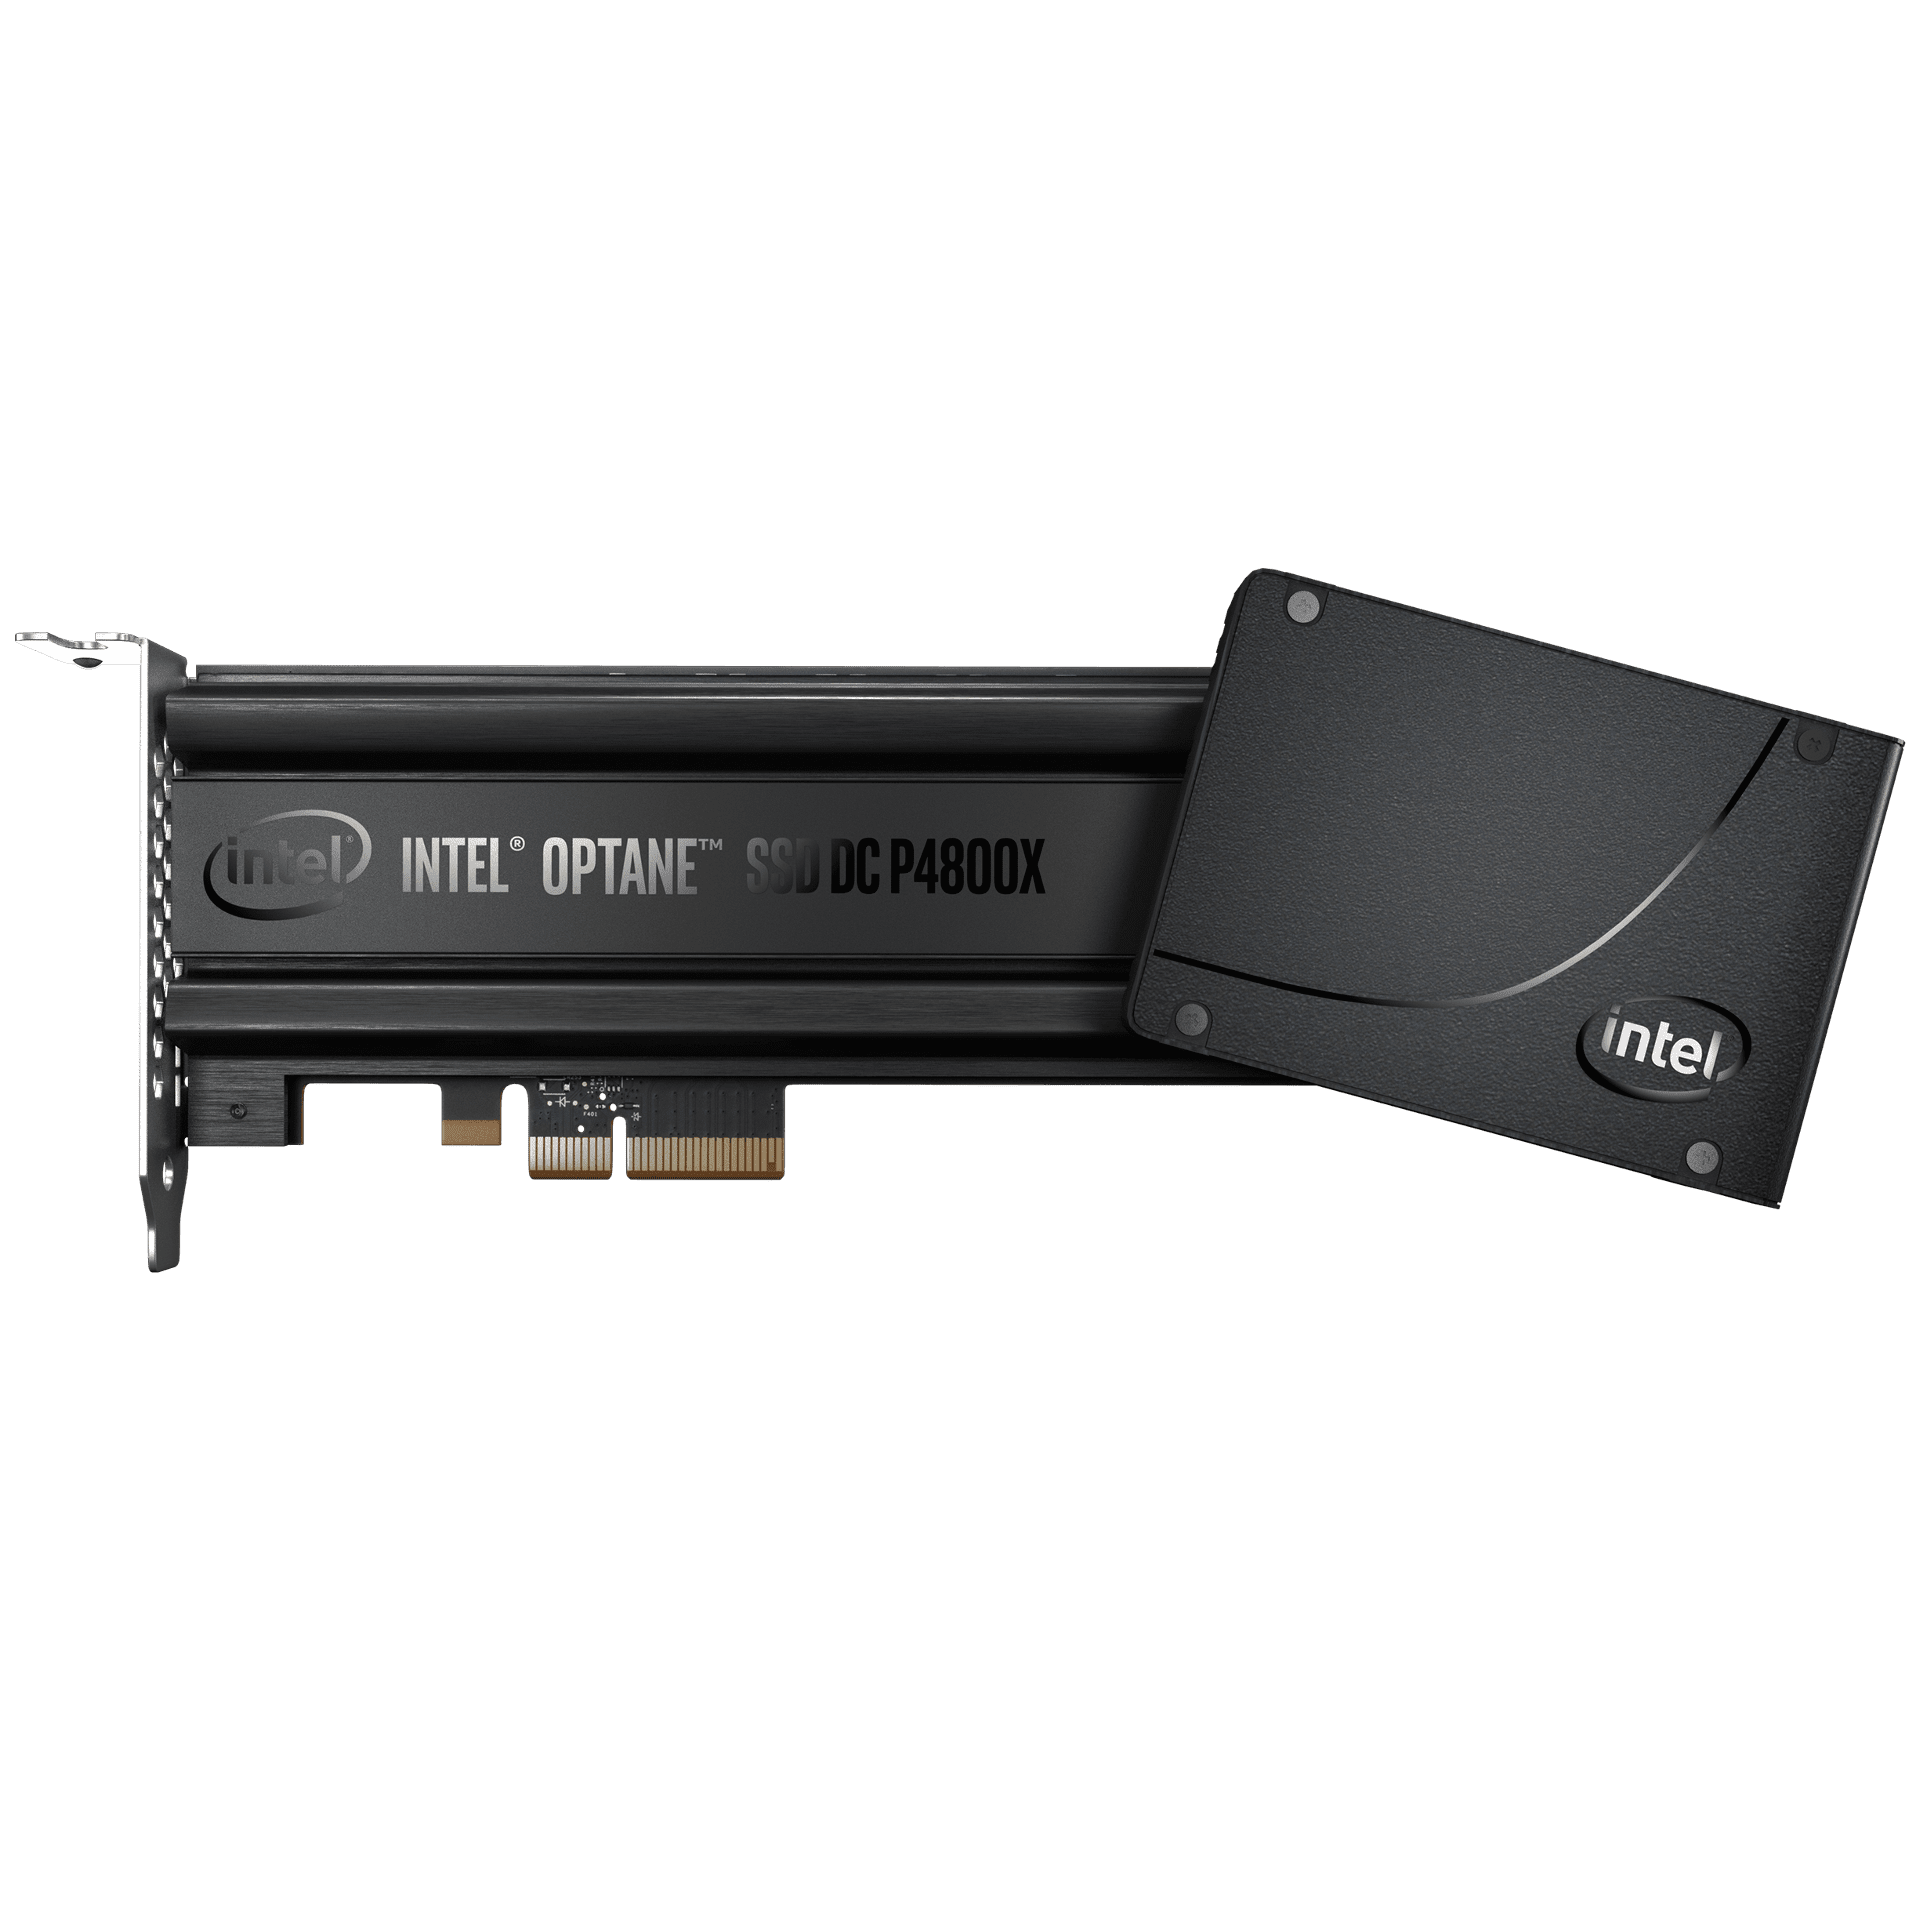 Intel Optane SSD DC P4800X Solid State Drive